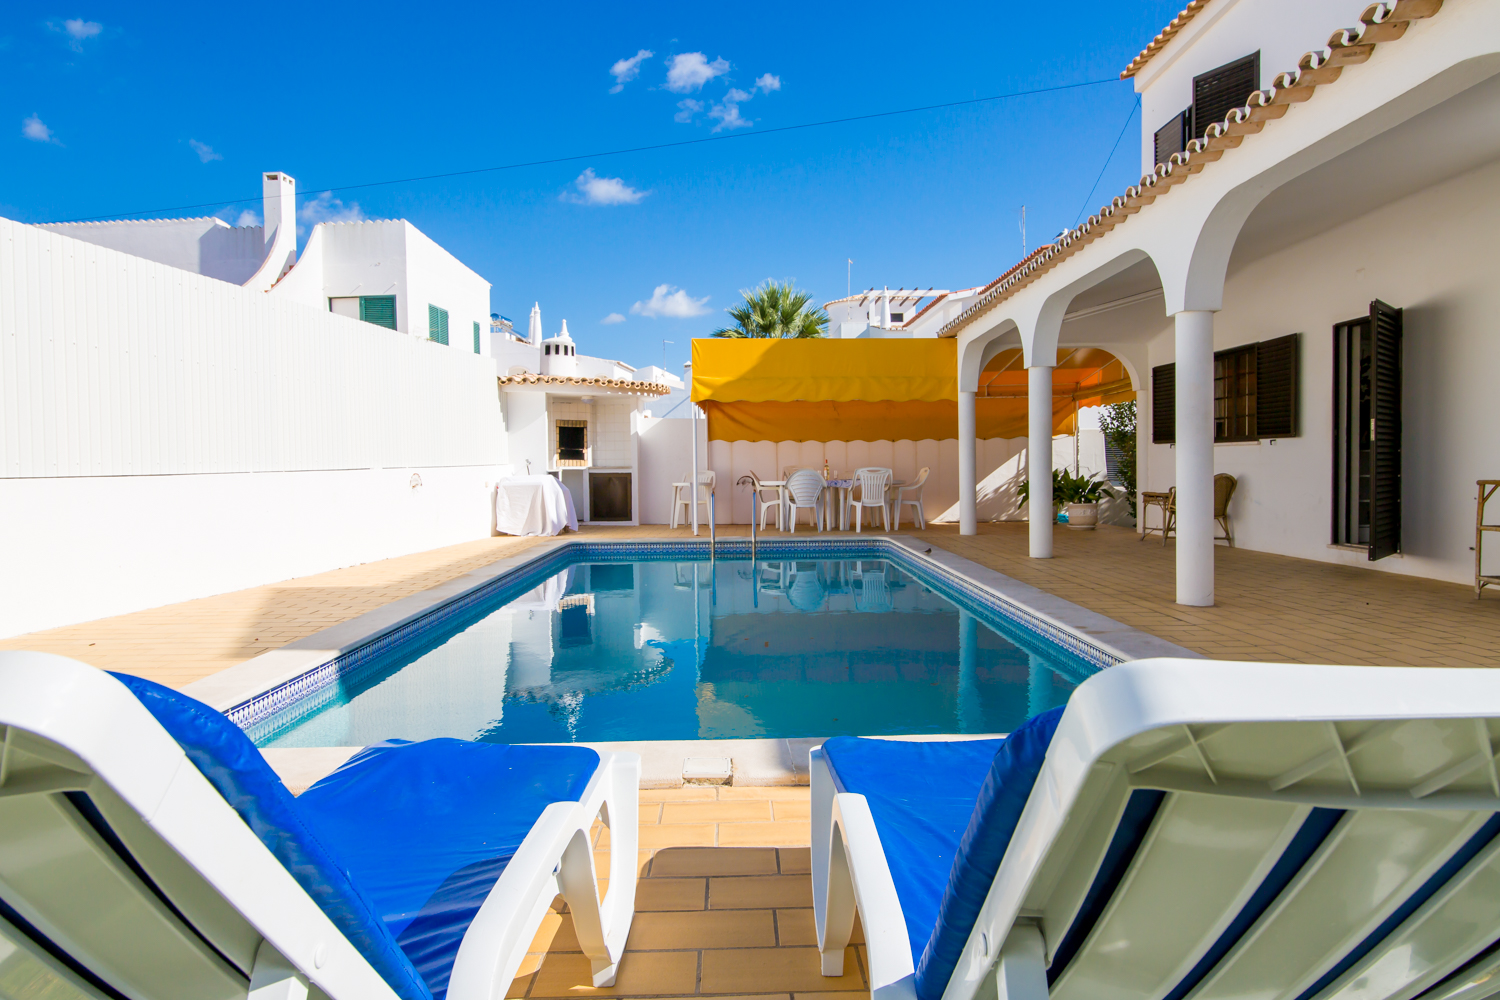 Large 6 bedroom villa with sea views, 350 metres from beautiful sandy beaches.